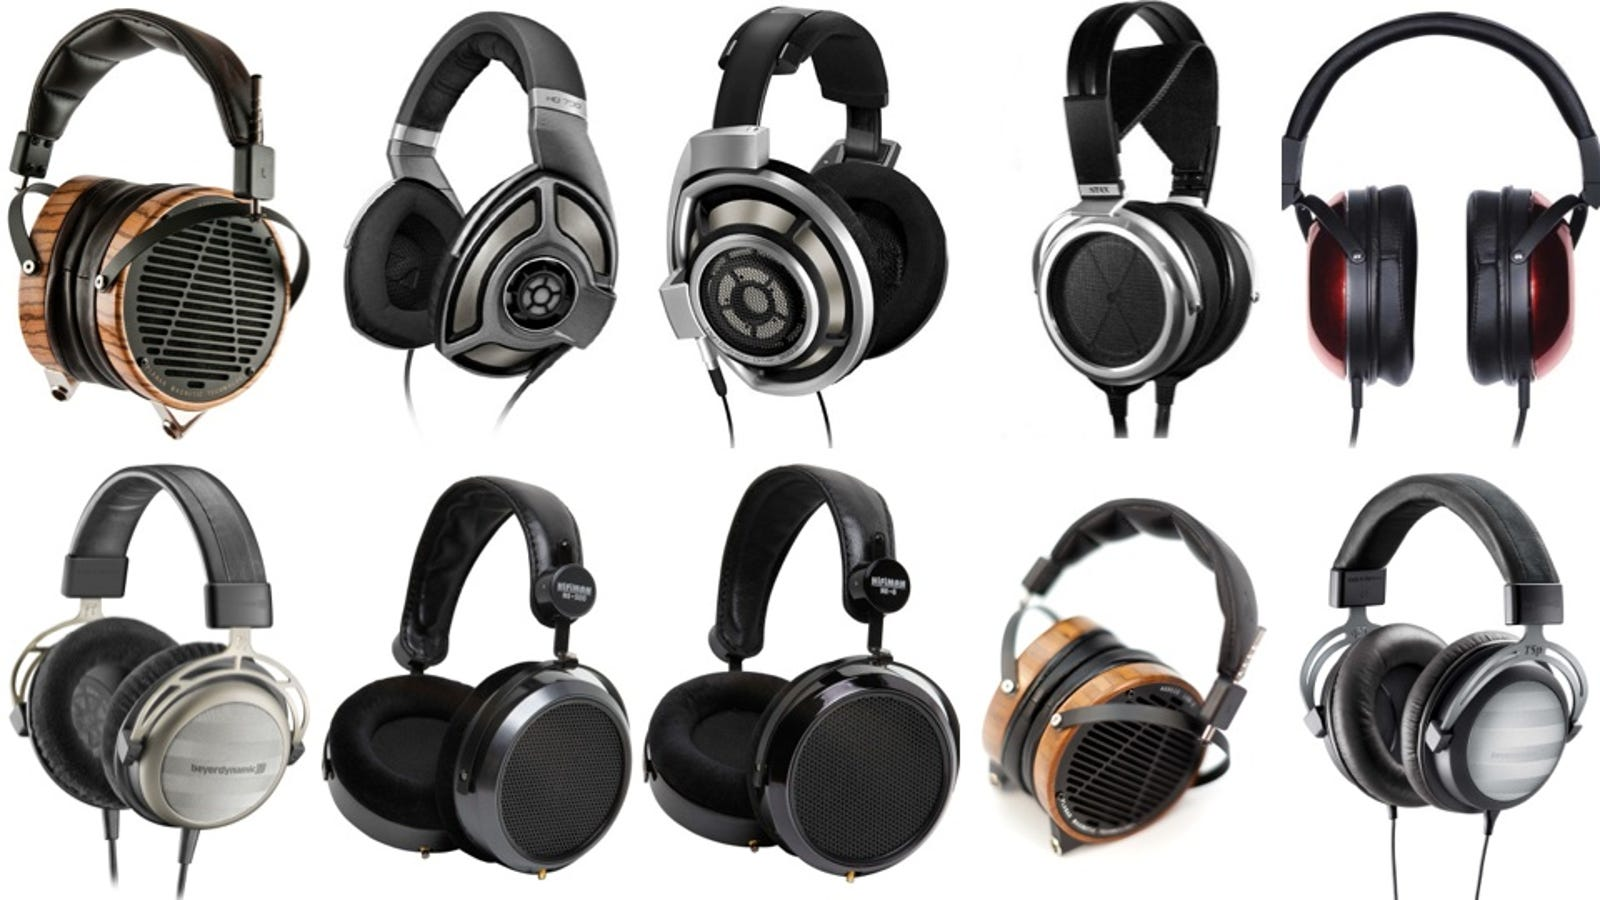 headphone earbuds - The Best Headphones Money Can Buy